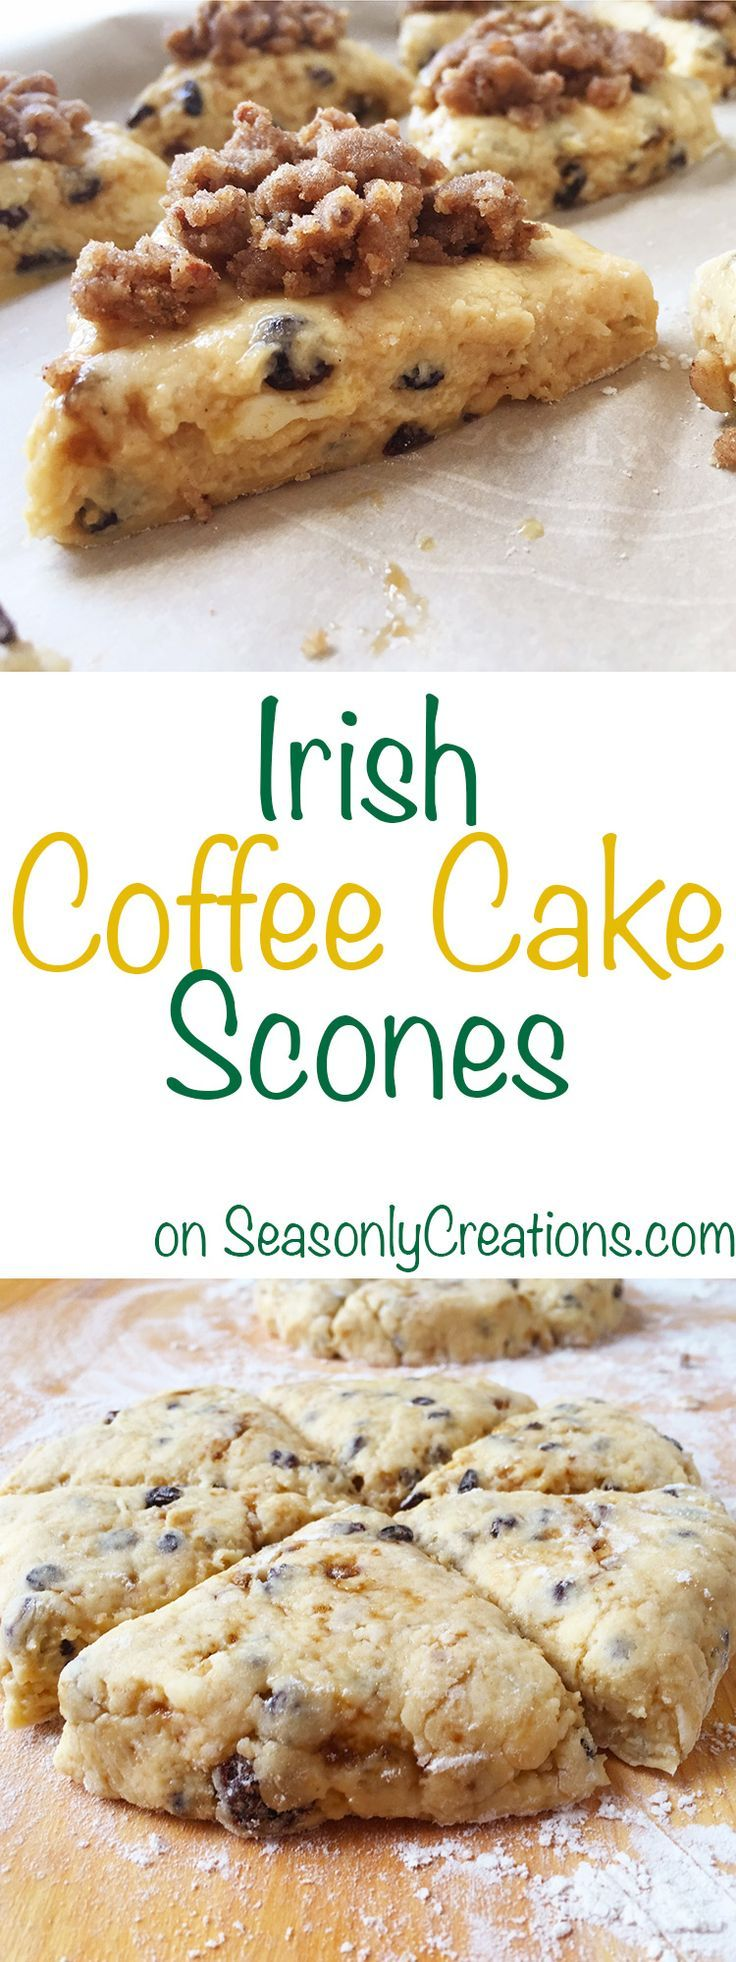 Irish Coffee Cake Scone recipe, a great option for St. Patricks Day or anytime you need a sweet tooth fix! PLUS, there's a FREE Printable Recipe and Resource List for your scone making project. Click through for the full recipe and for your free printable! | SeasonlyCreations.com | @SeasonlyBlog